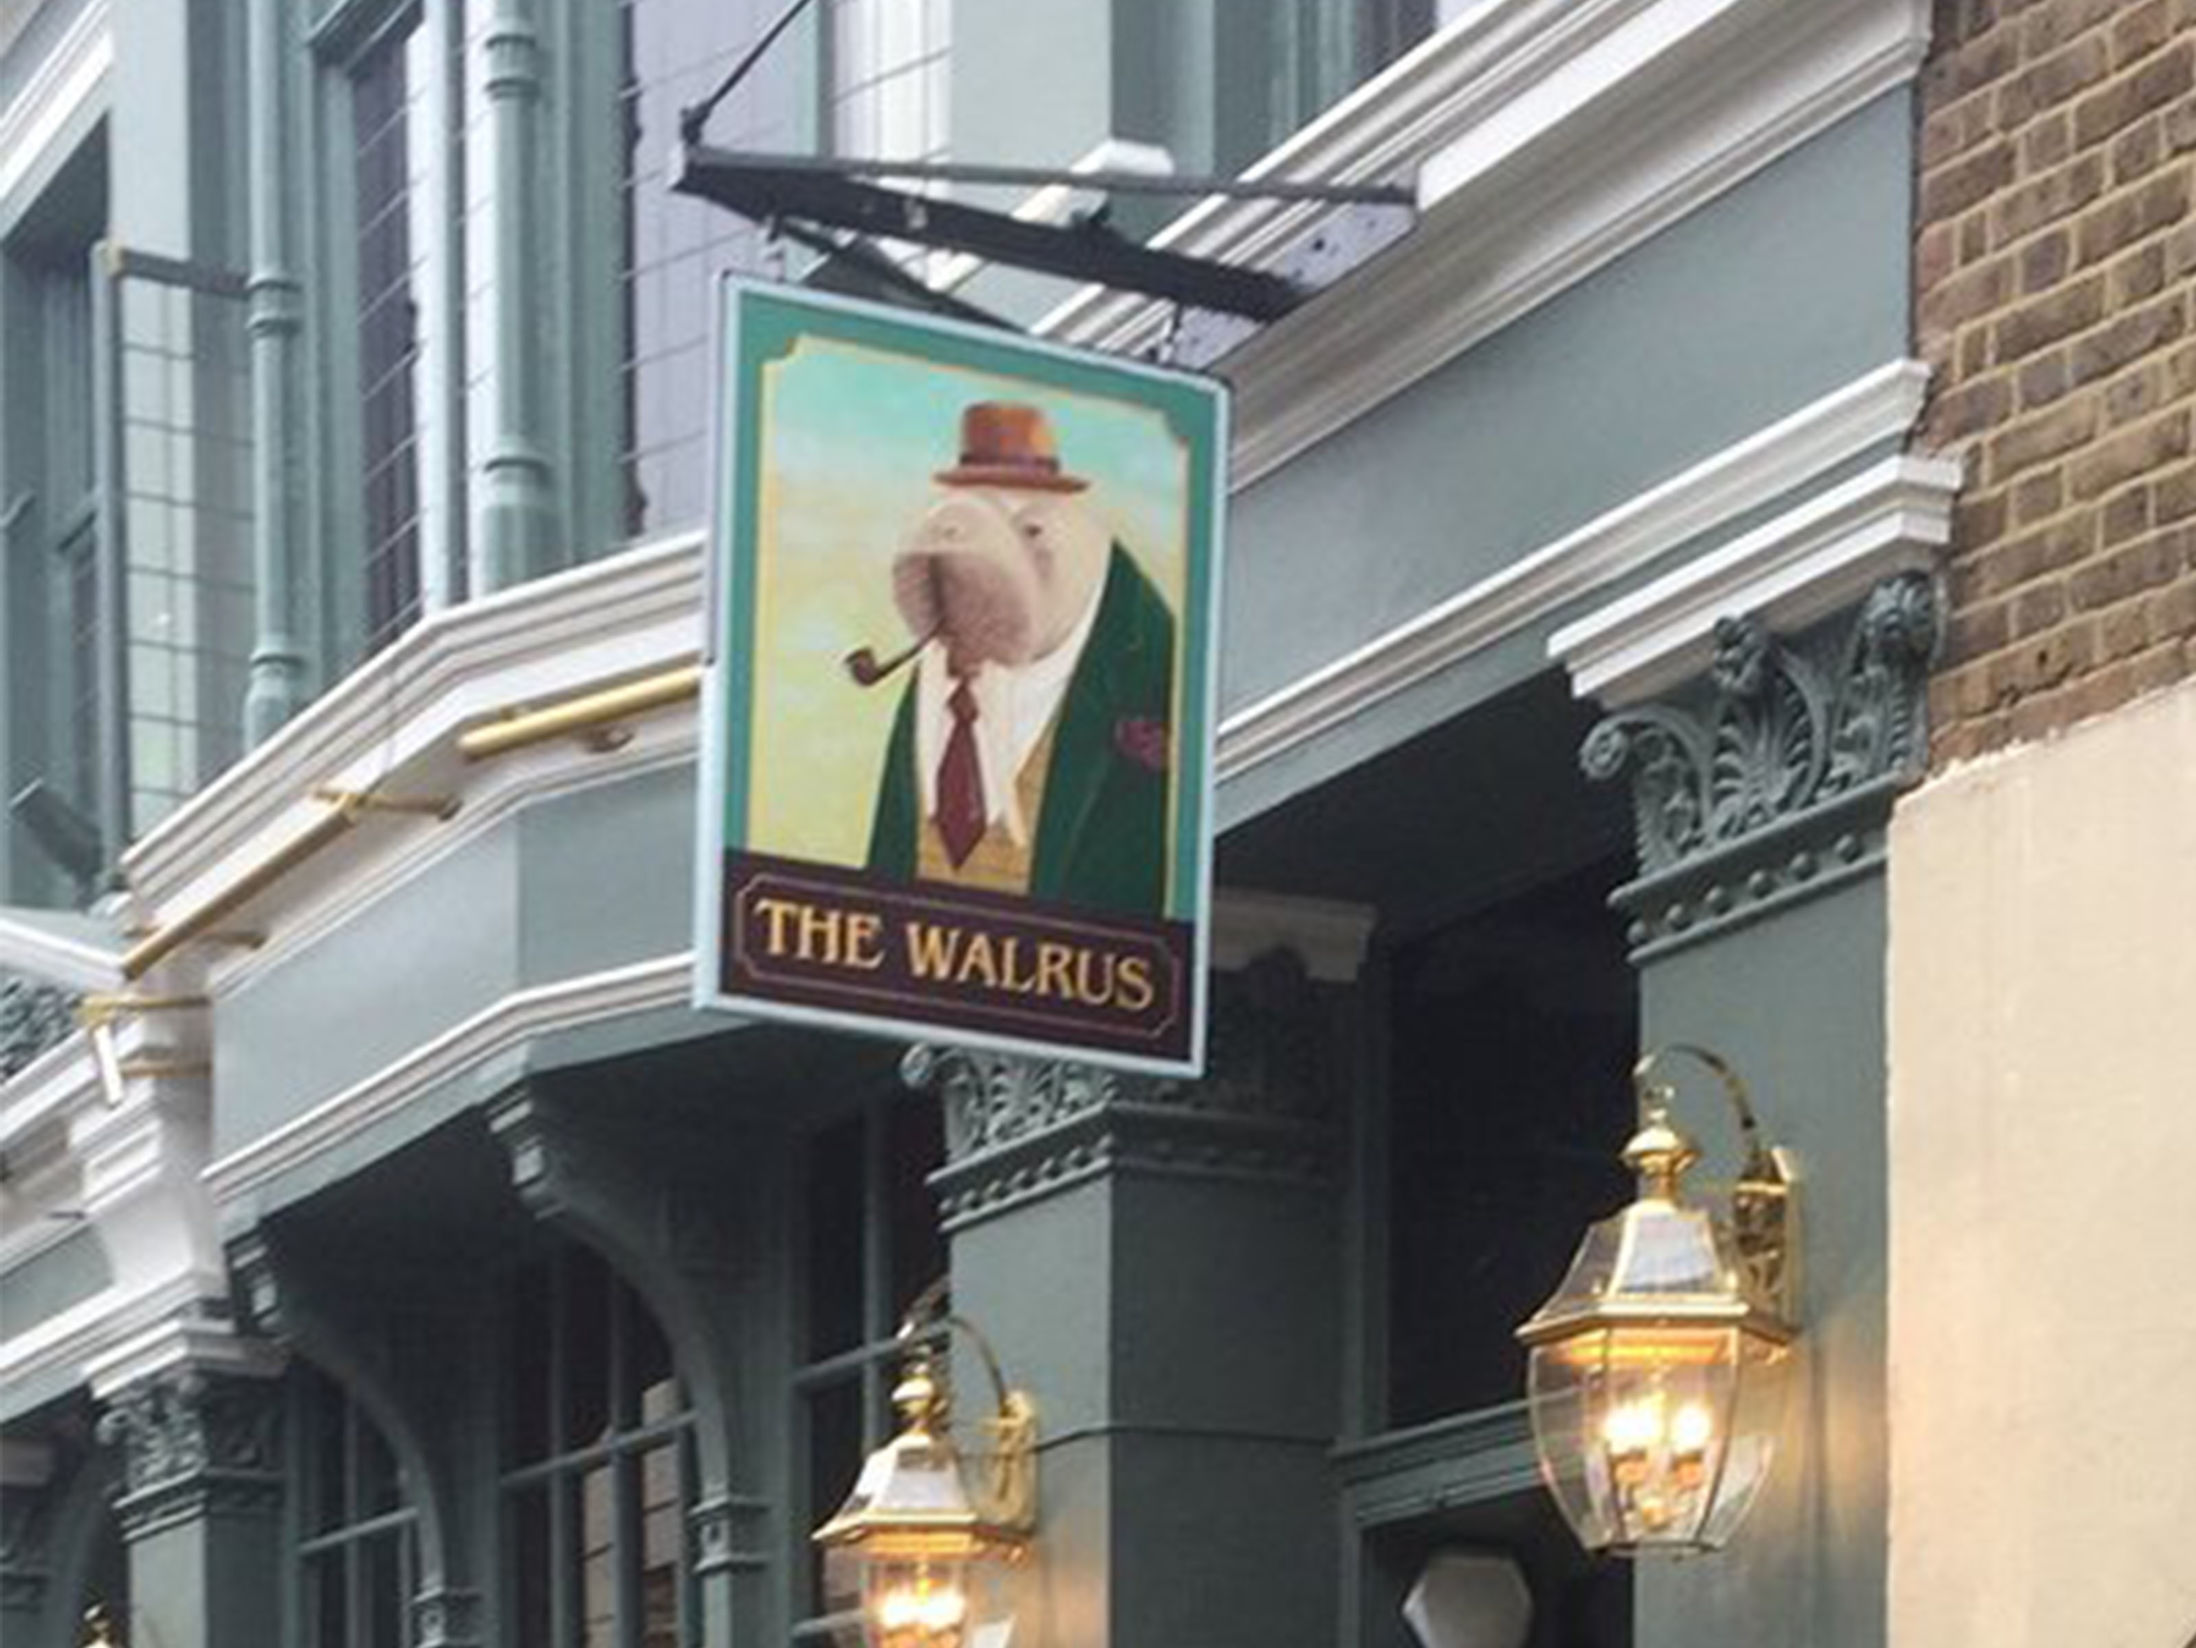 Best Pubs in Brighton - The Walrus